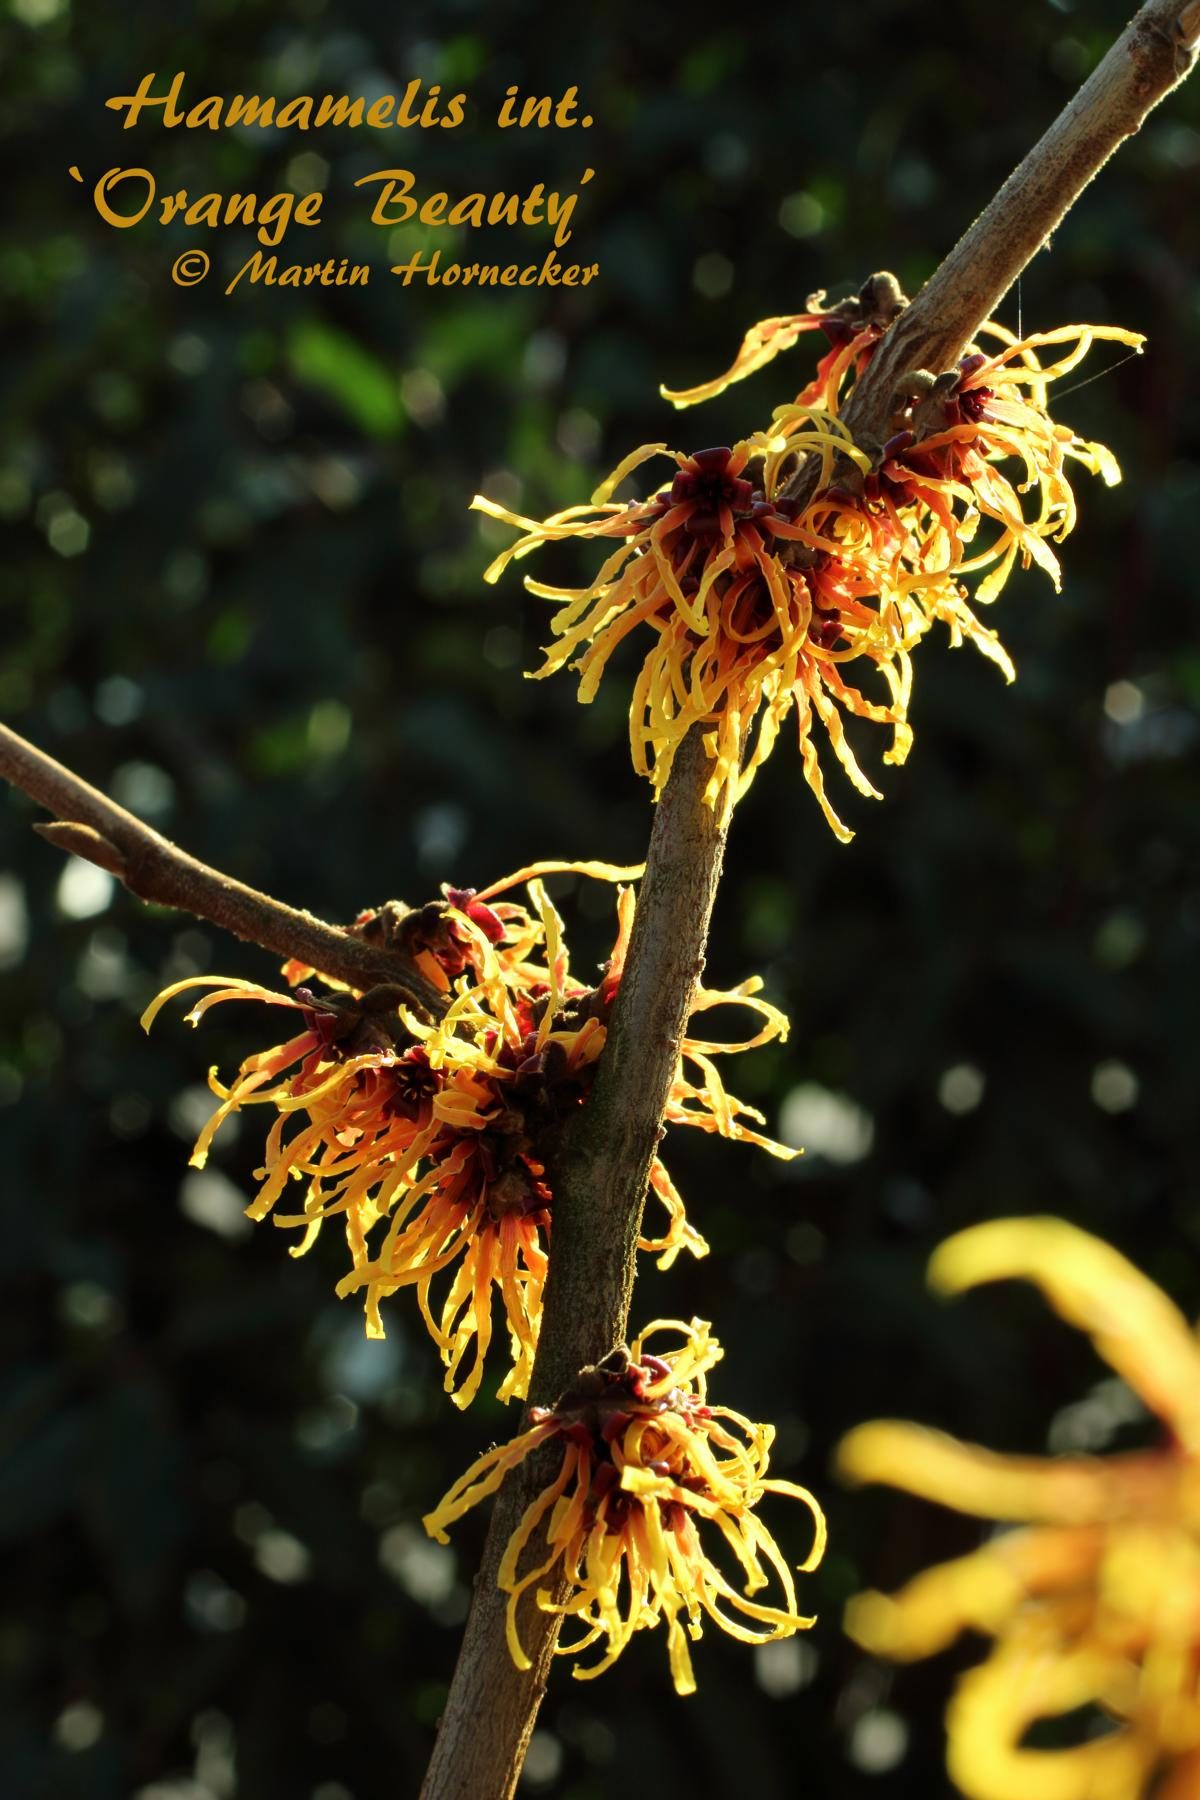 Hamamelis Orange Beauty